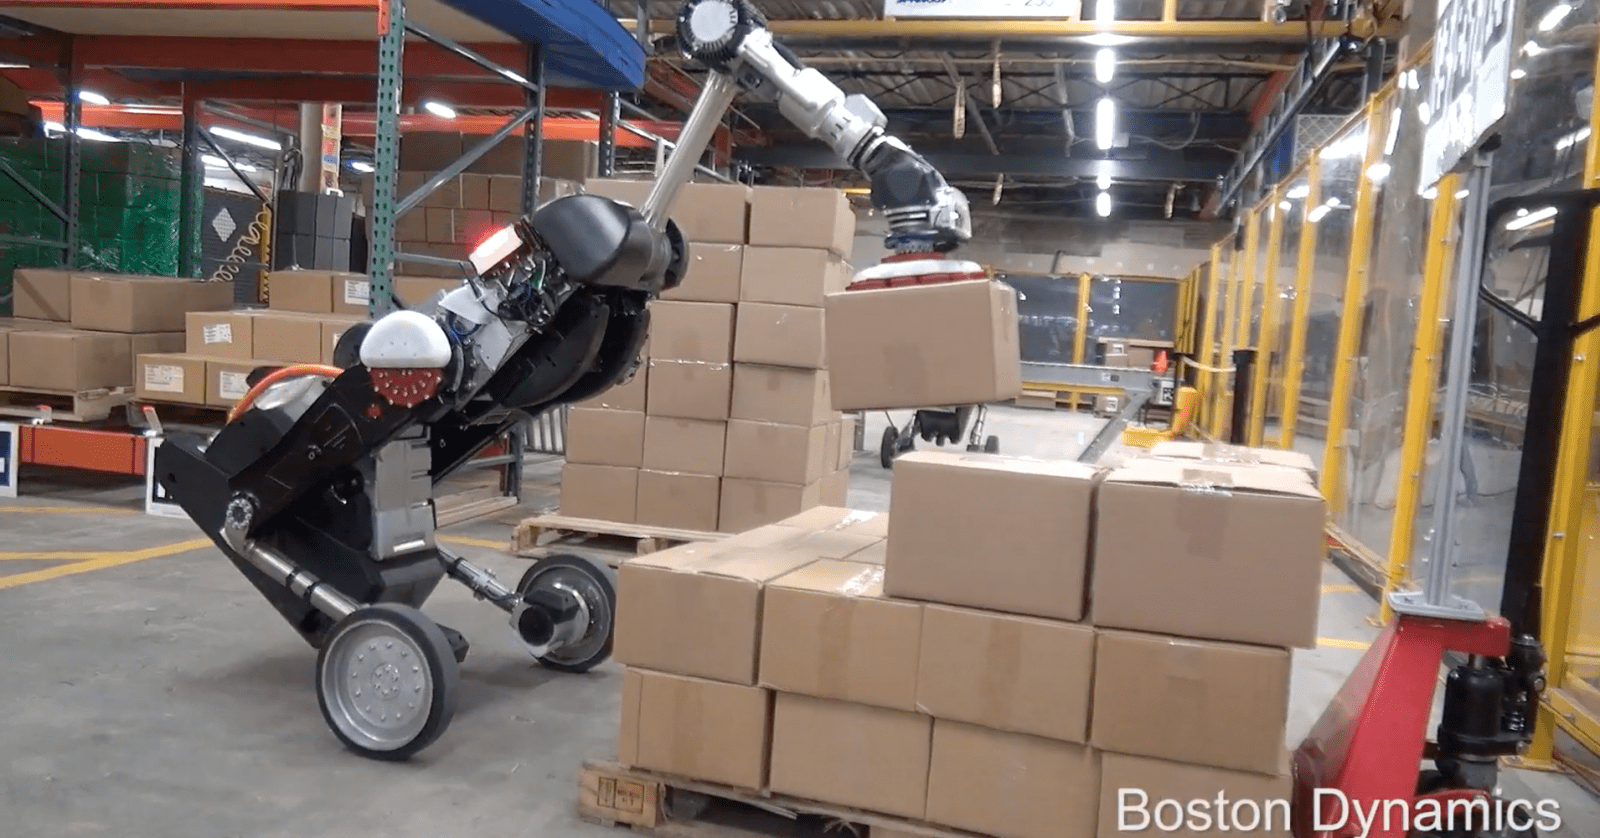 Watch this gigantic bird-like robot load boxes onto a